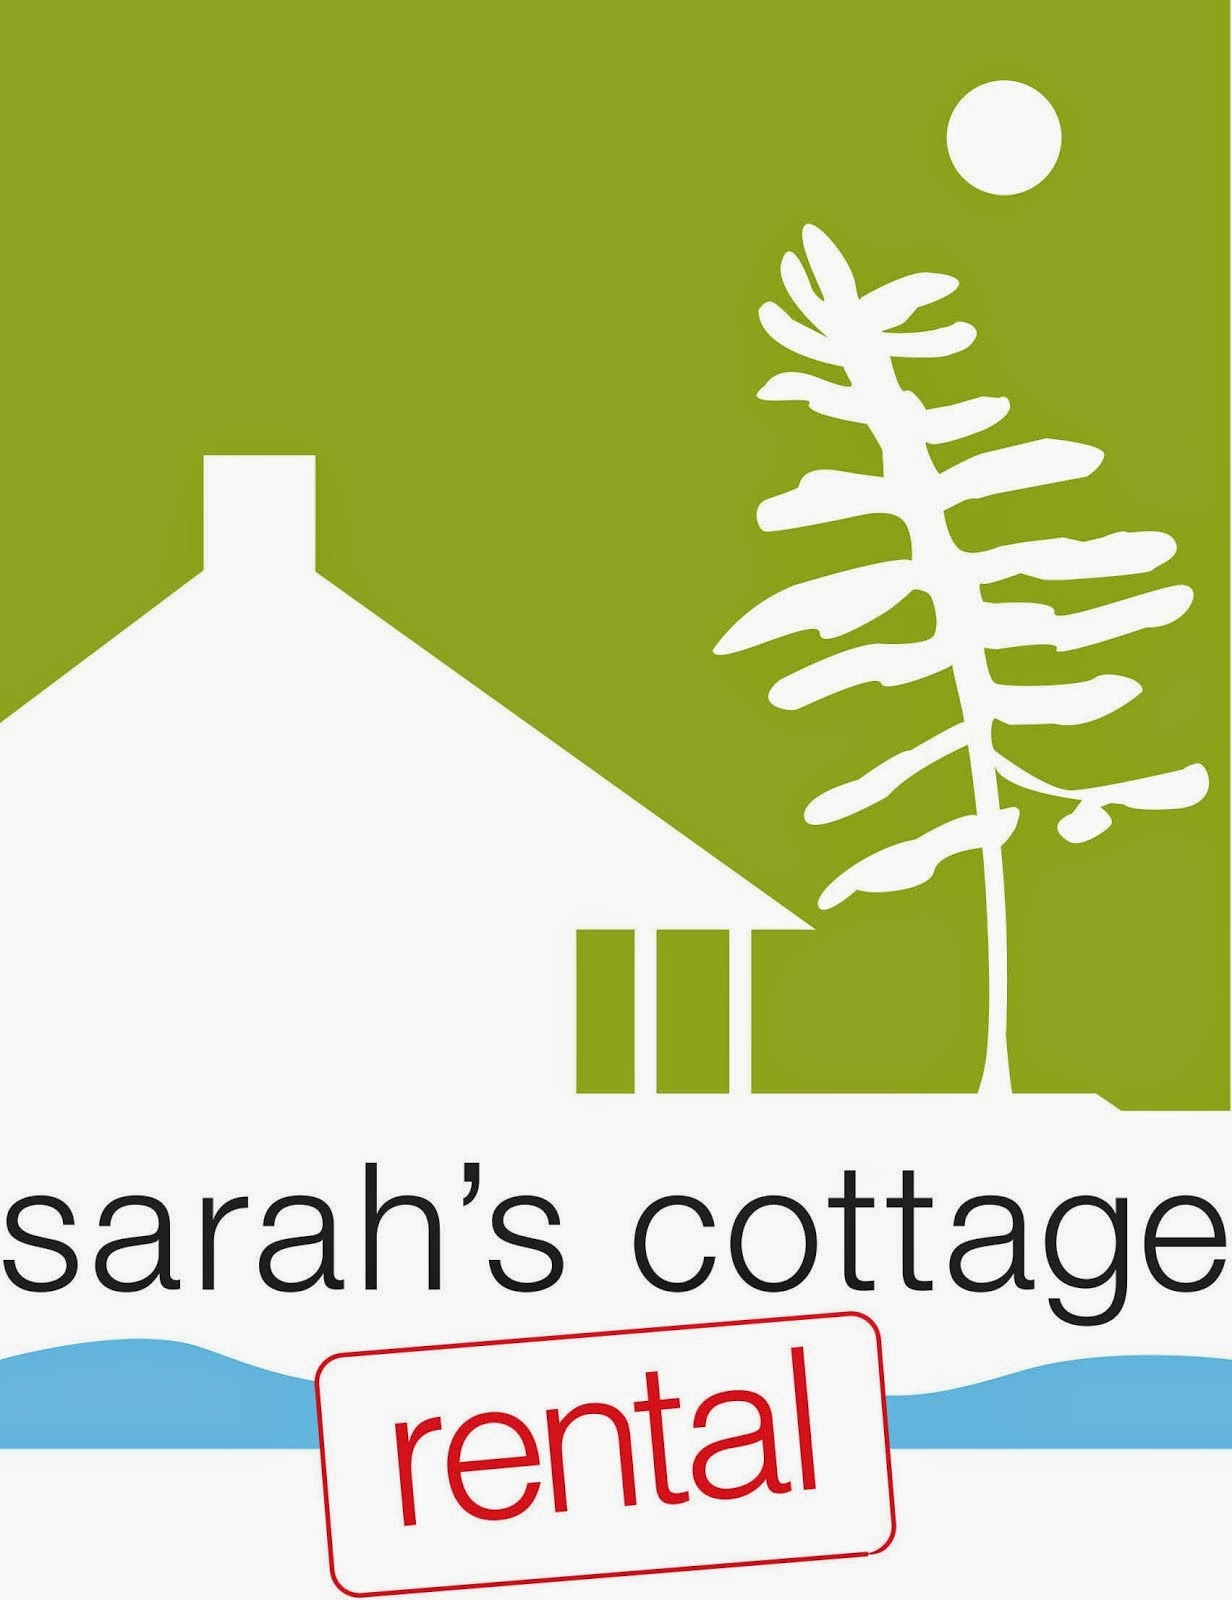 Sarah's Rental Cottage